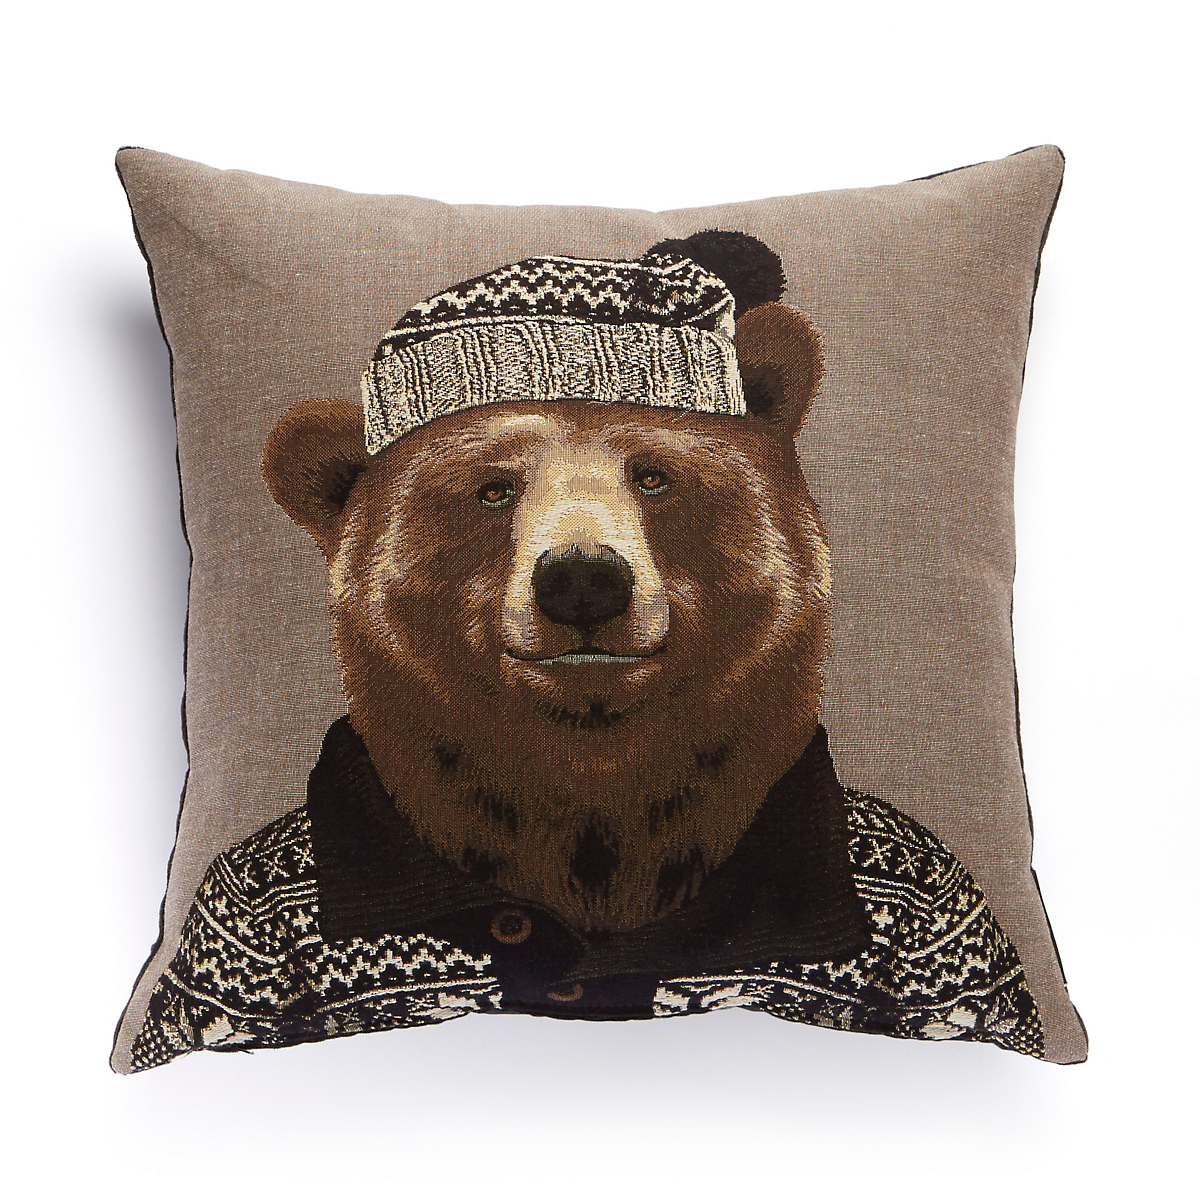 Cozy Critters Bear Pillow